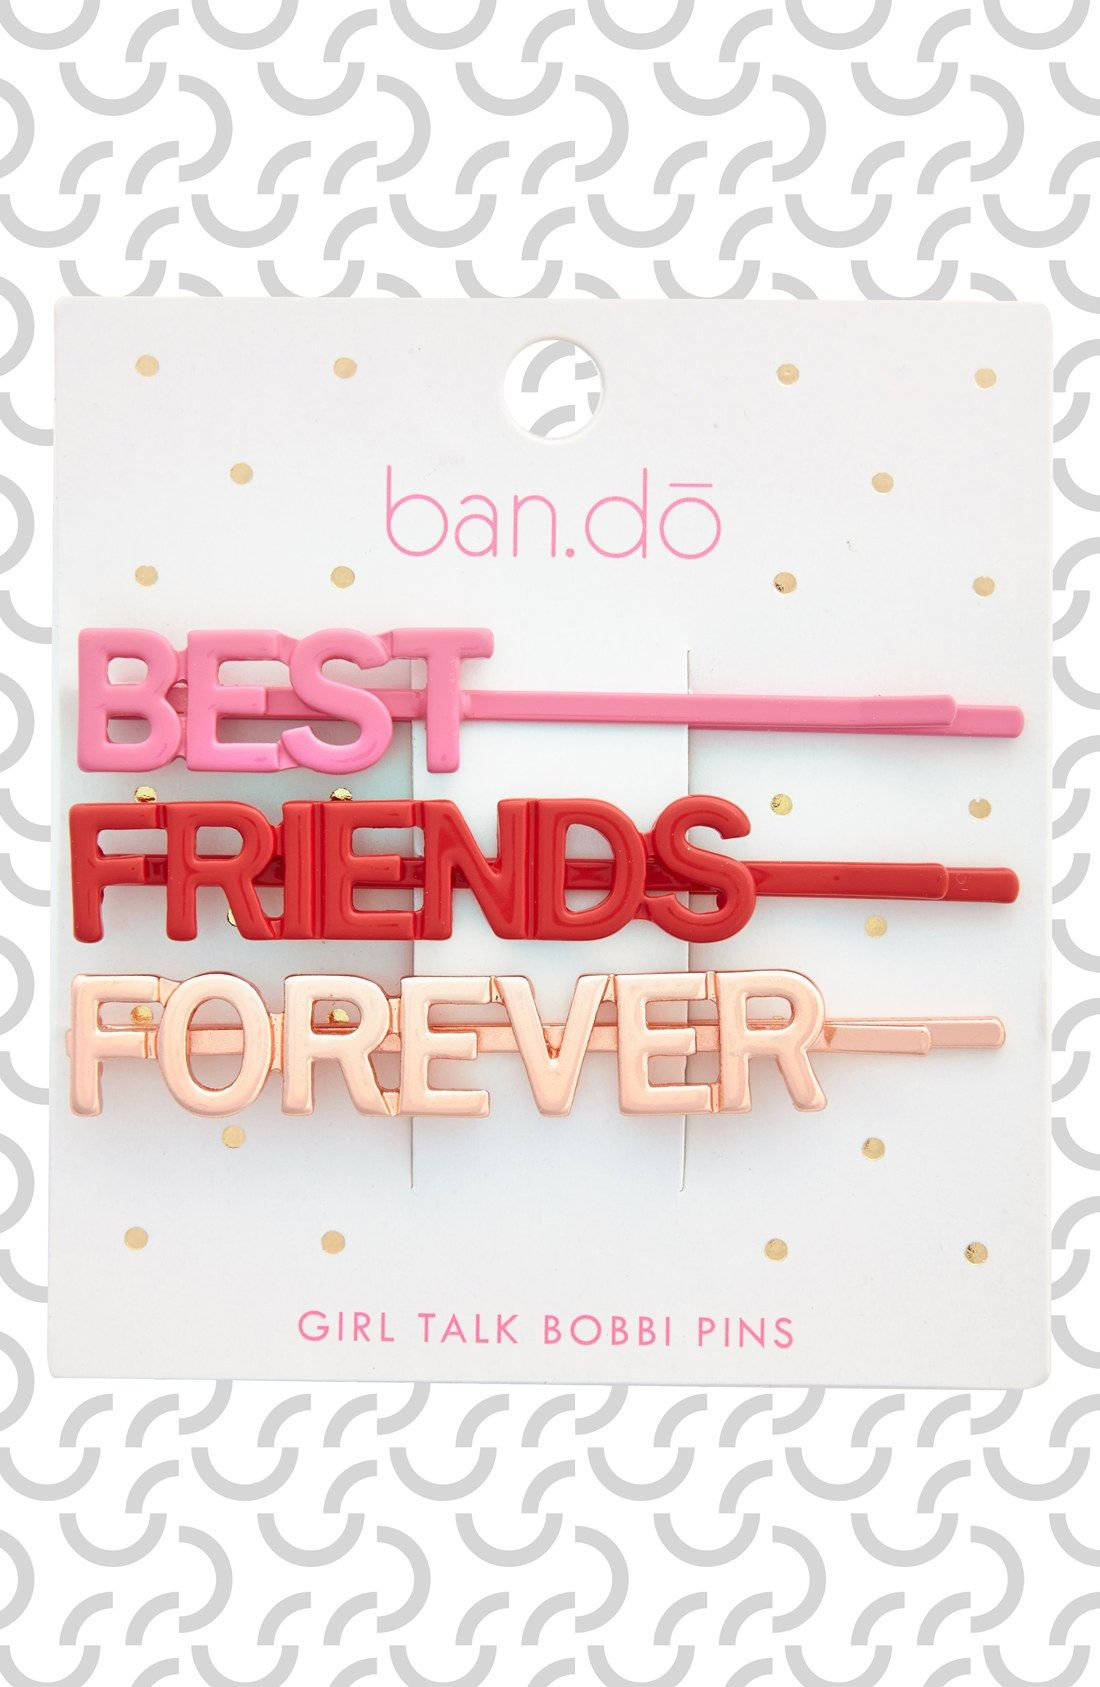 This 'Girl Talk' bobby pin set is perfect for the bestie!